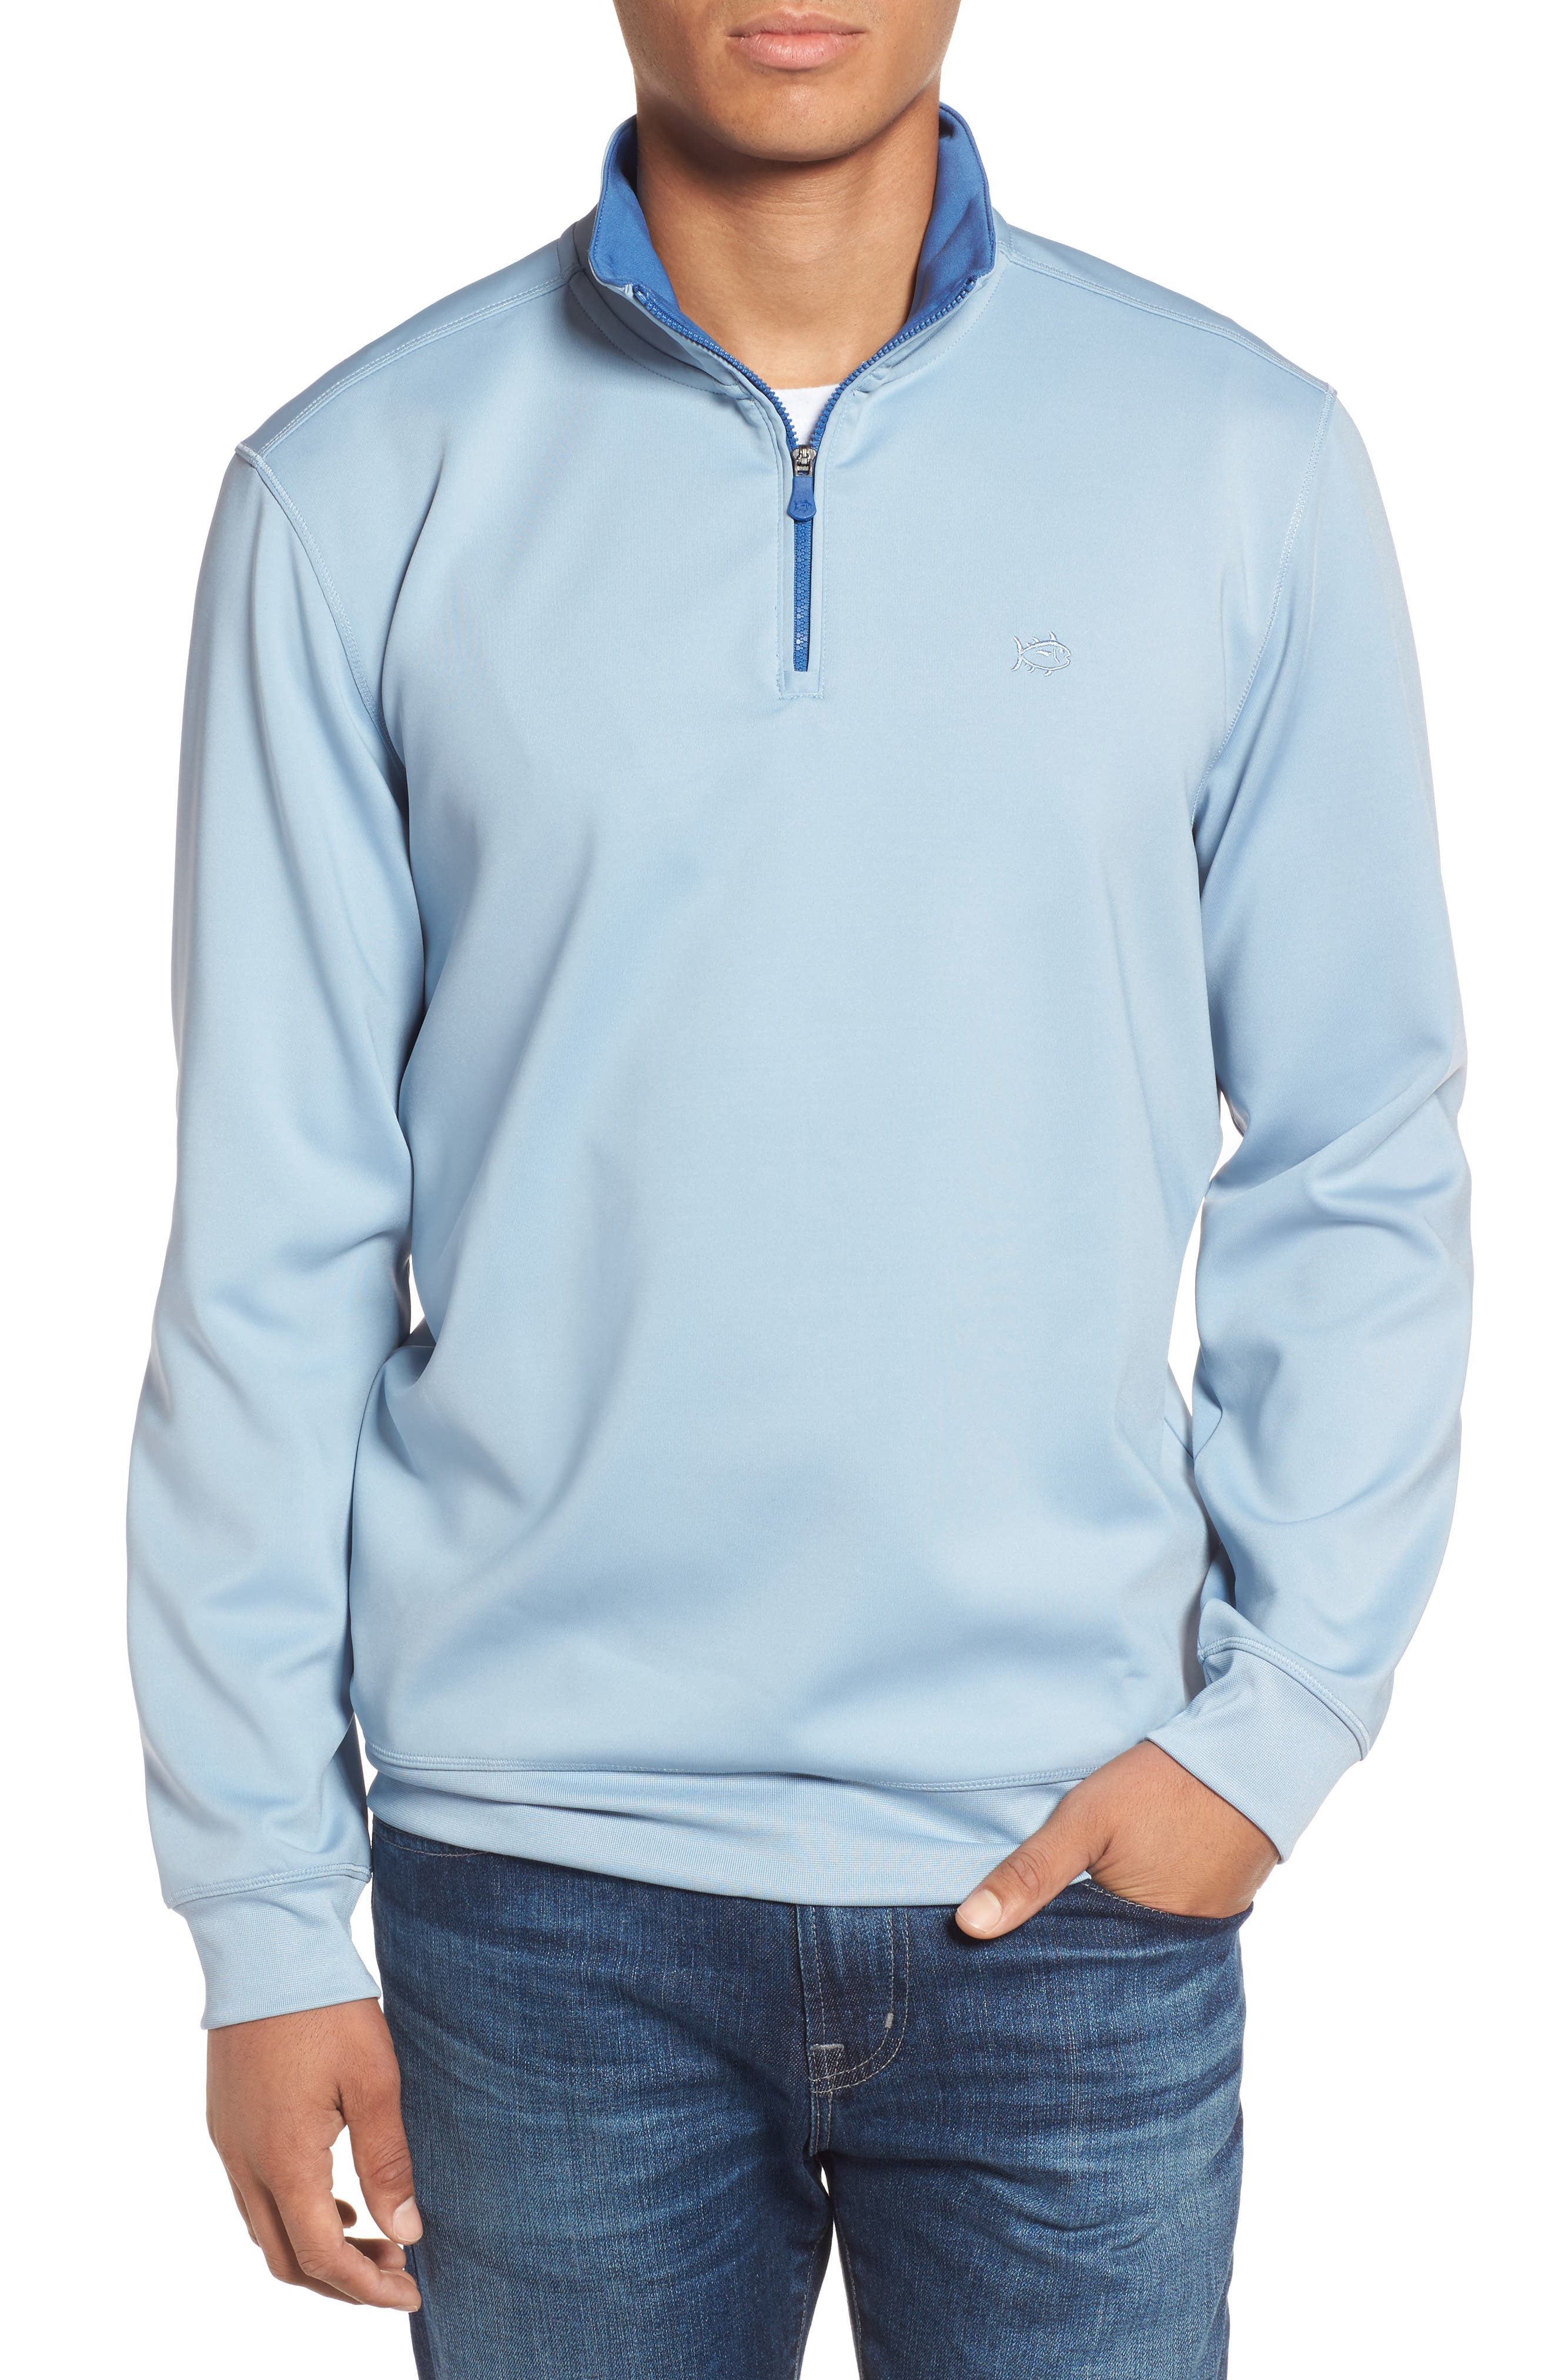 Alternate Image 1 Selected - Southern Tide 19th Hole Quarter Zip Pullover